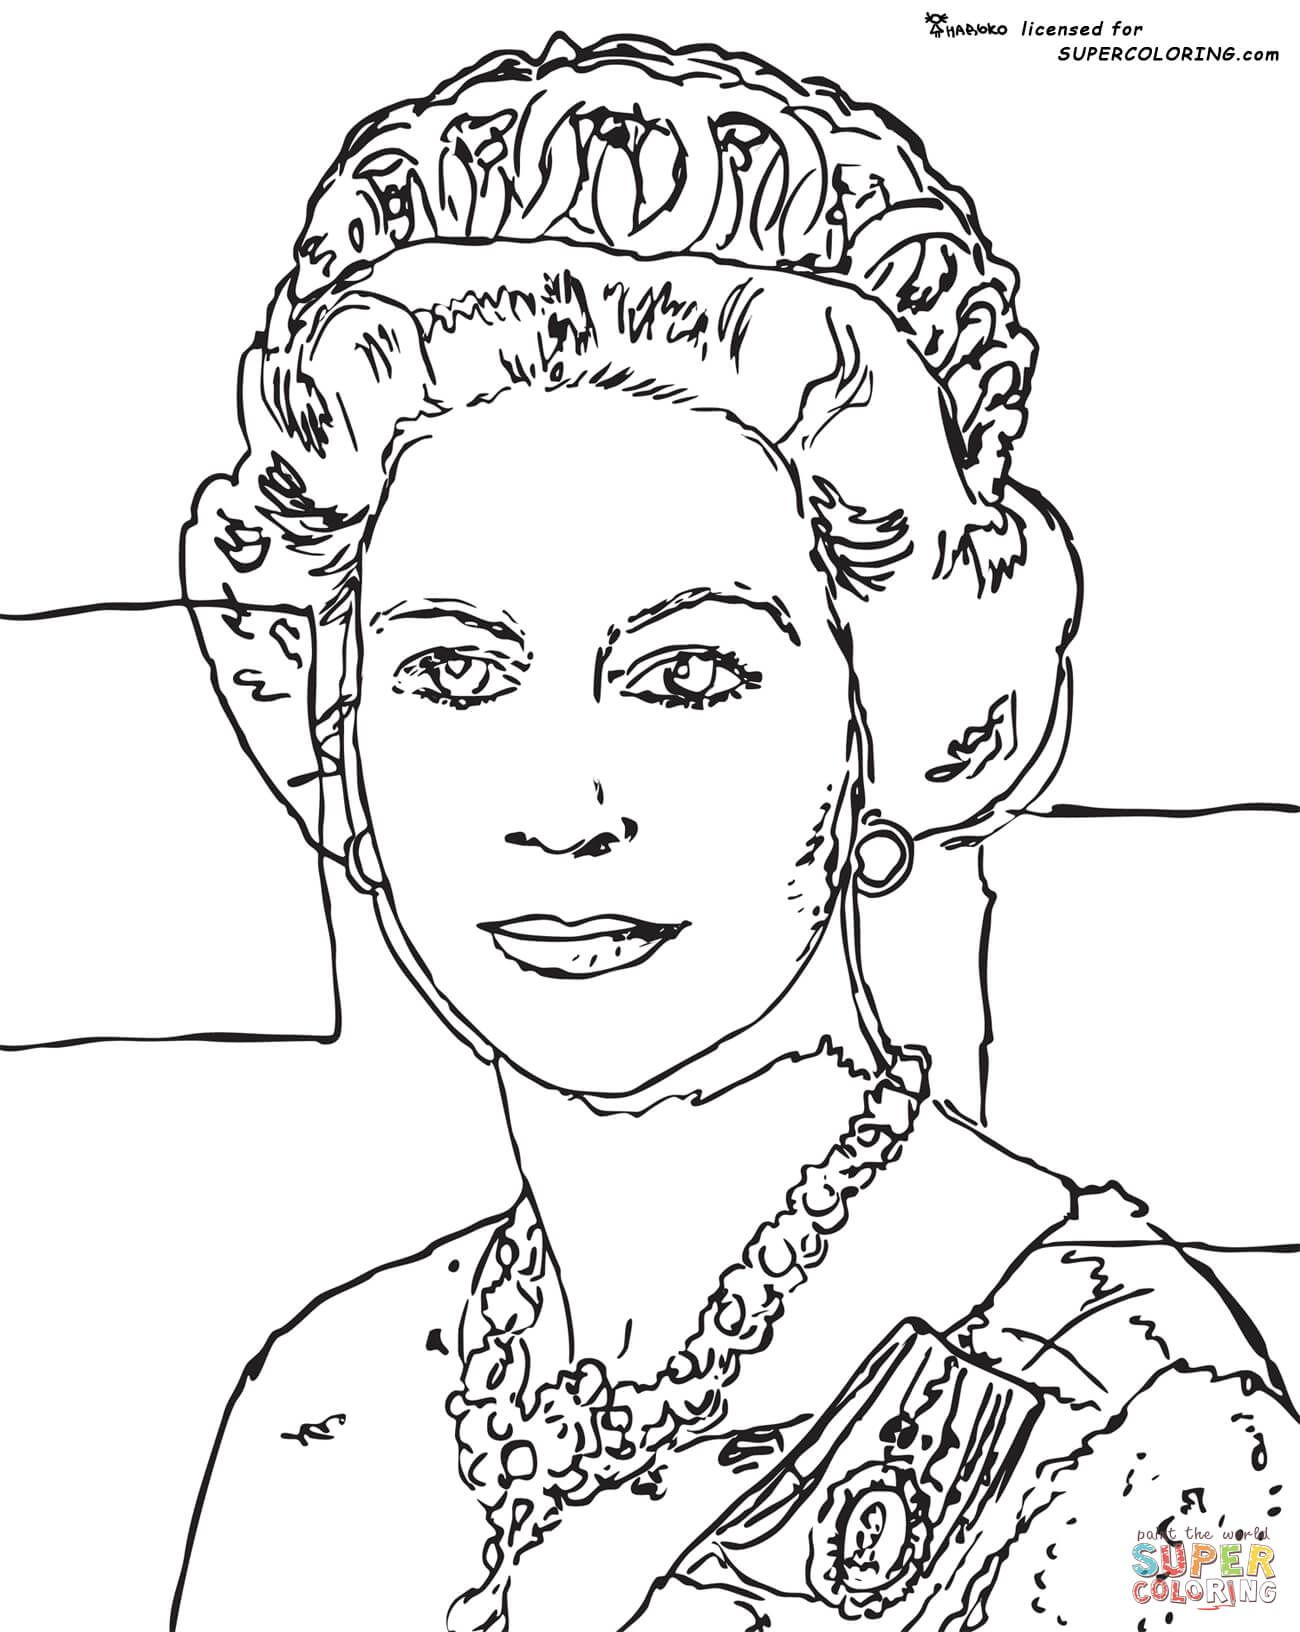 Colouring in kings and queens - Learn To Draw The Queen Learn To Draw Queen Elizabeth Ii Messy Church Commonwealth Games Pinterest Queen Elizabeth Ii Scissors And Scrapbook